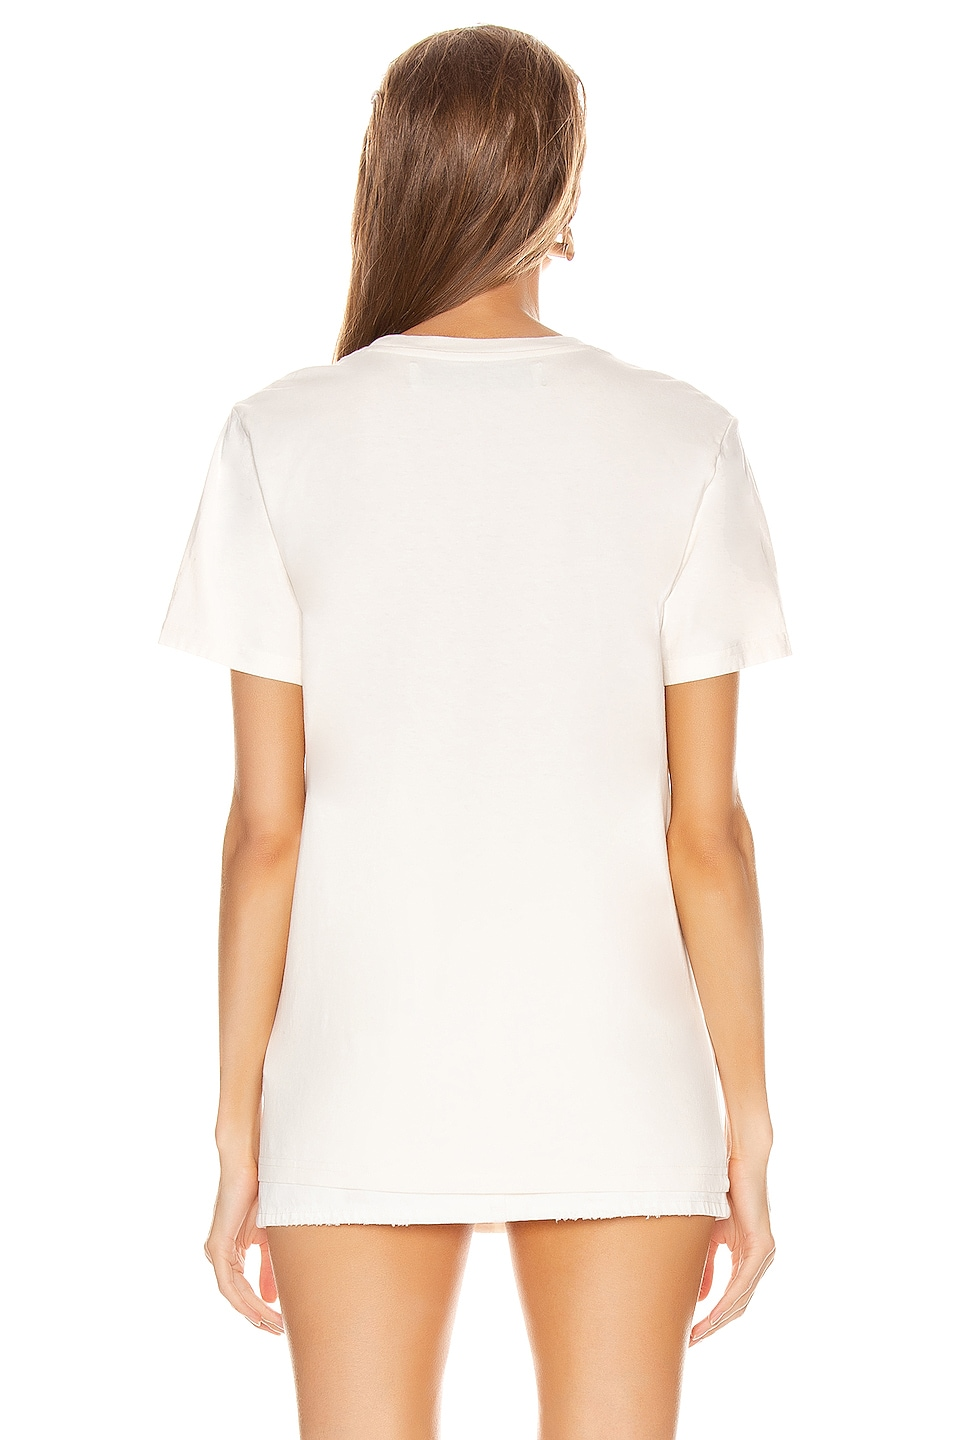 Image 4 of OFF-WHITE Sunglasses Woman Casual Tee in White & Black